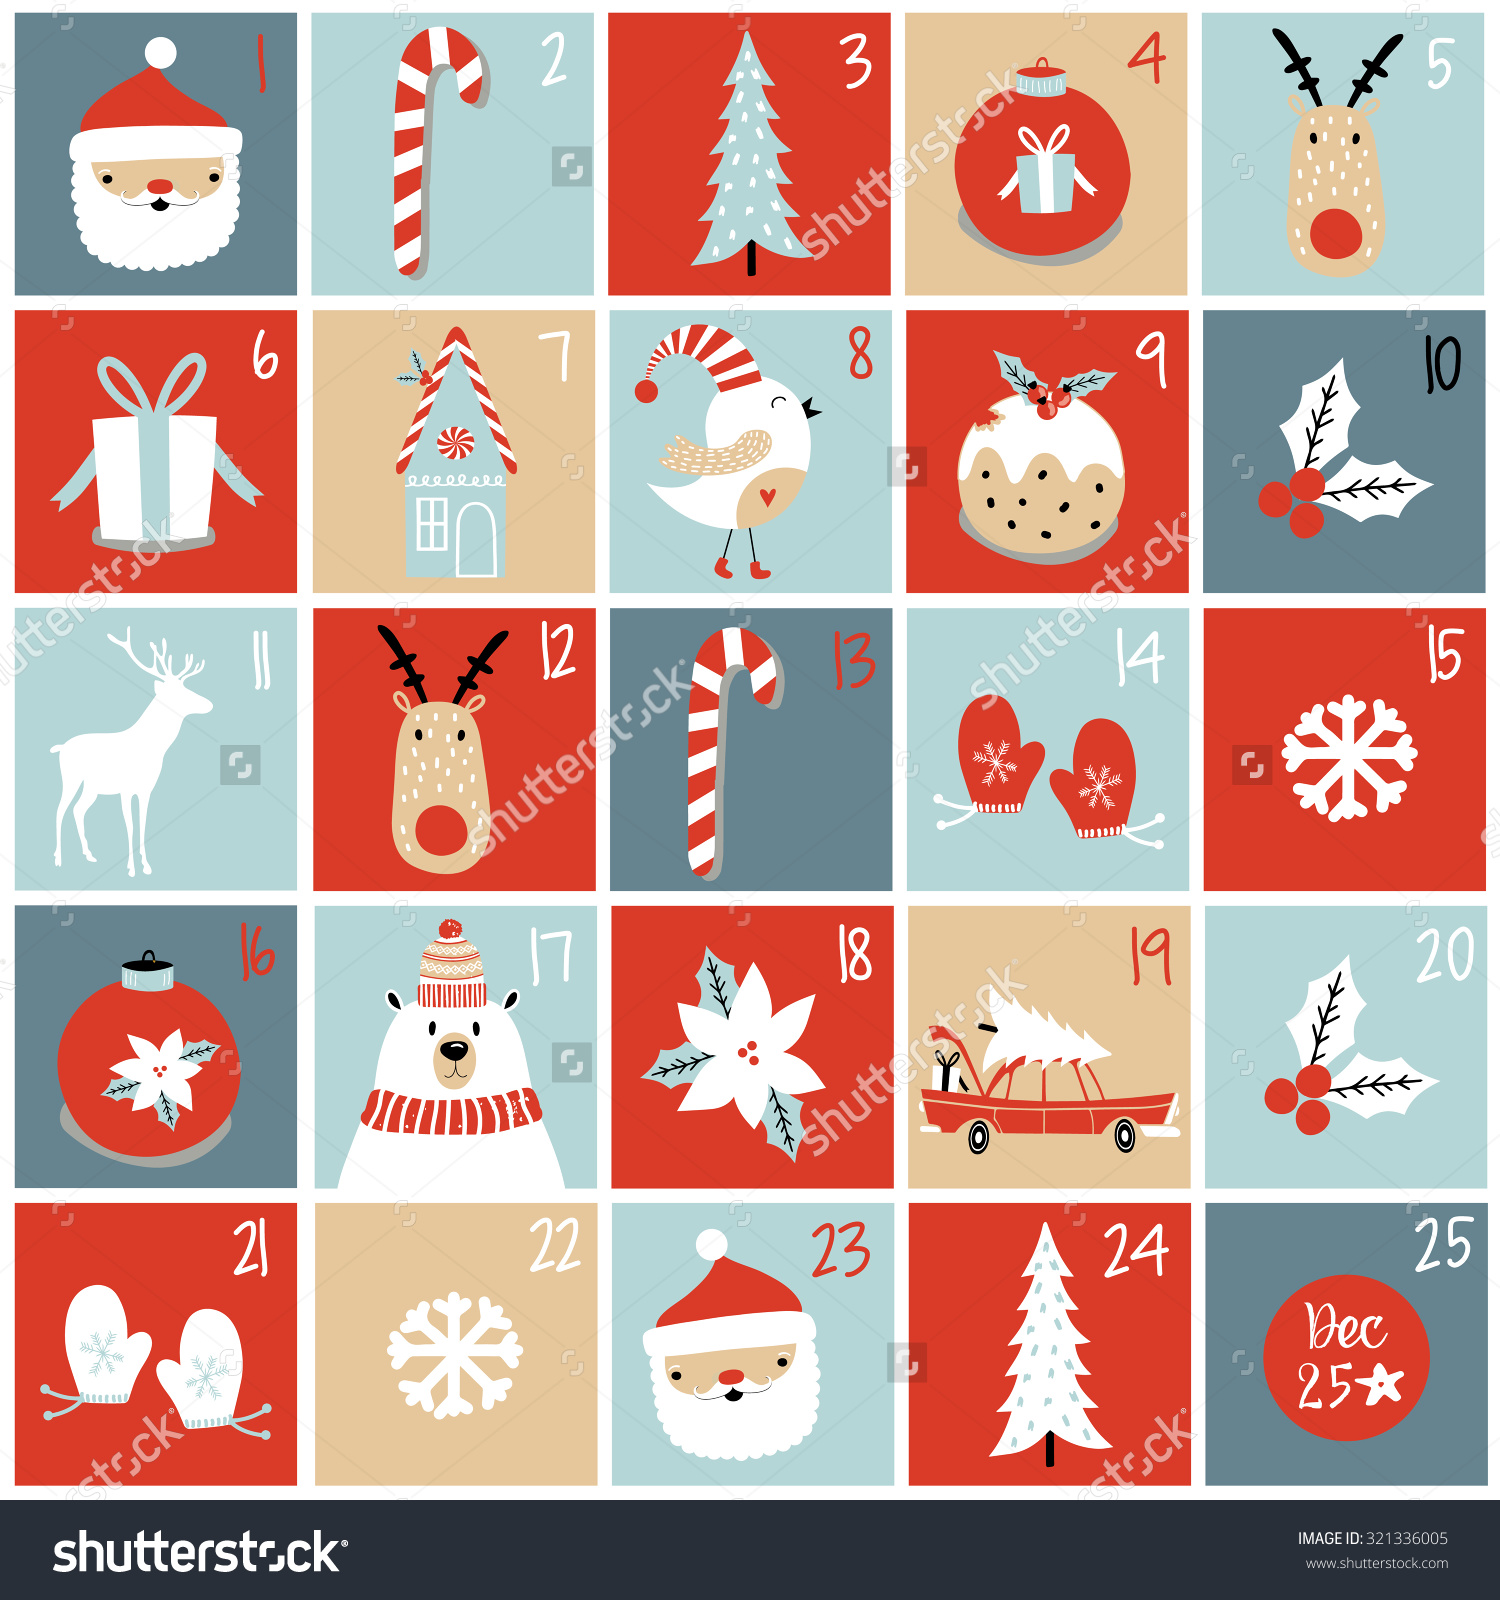 Clipart advent calendar image black and white stock Advent Calendar Christmas Poster Stock Vector 321336005 - Shutterstock image black and white stock